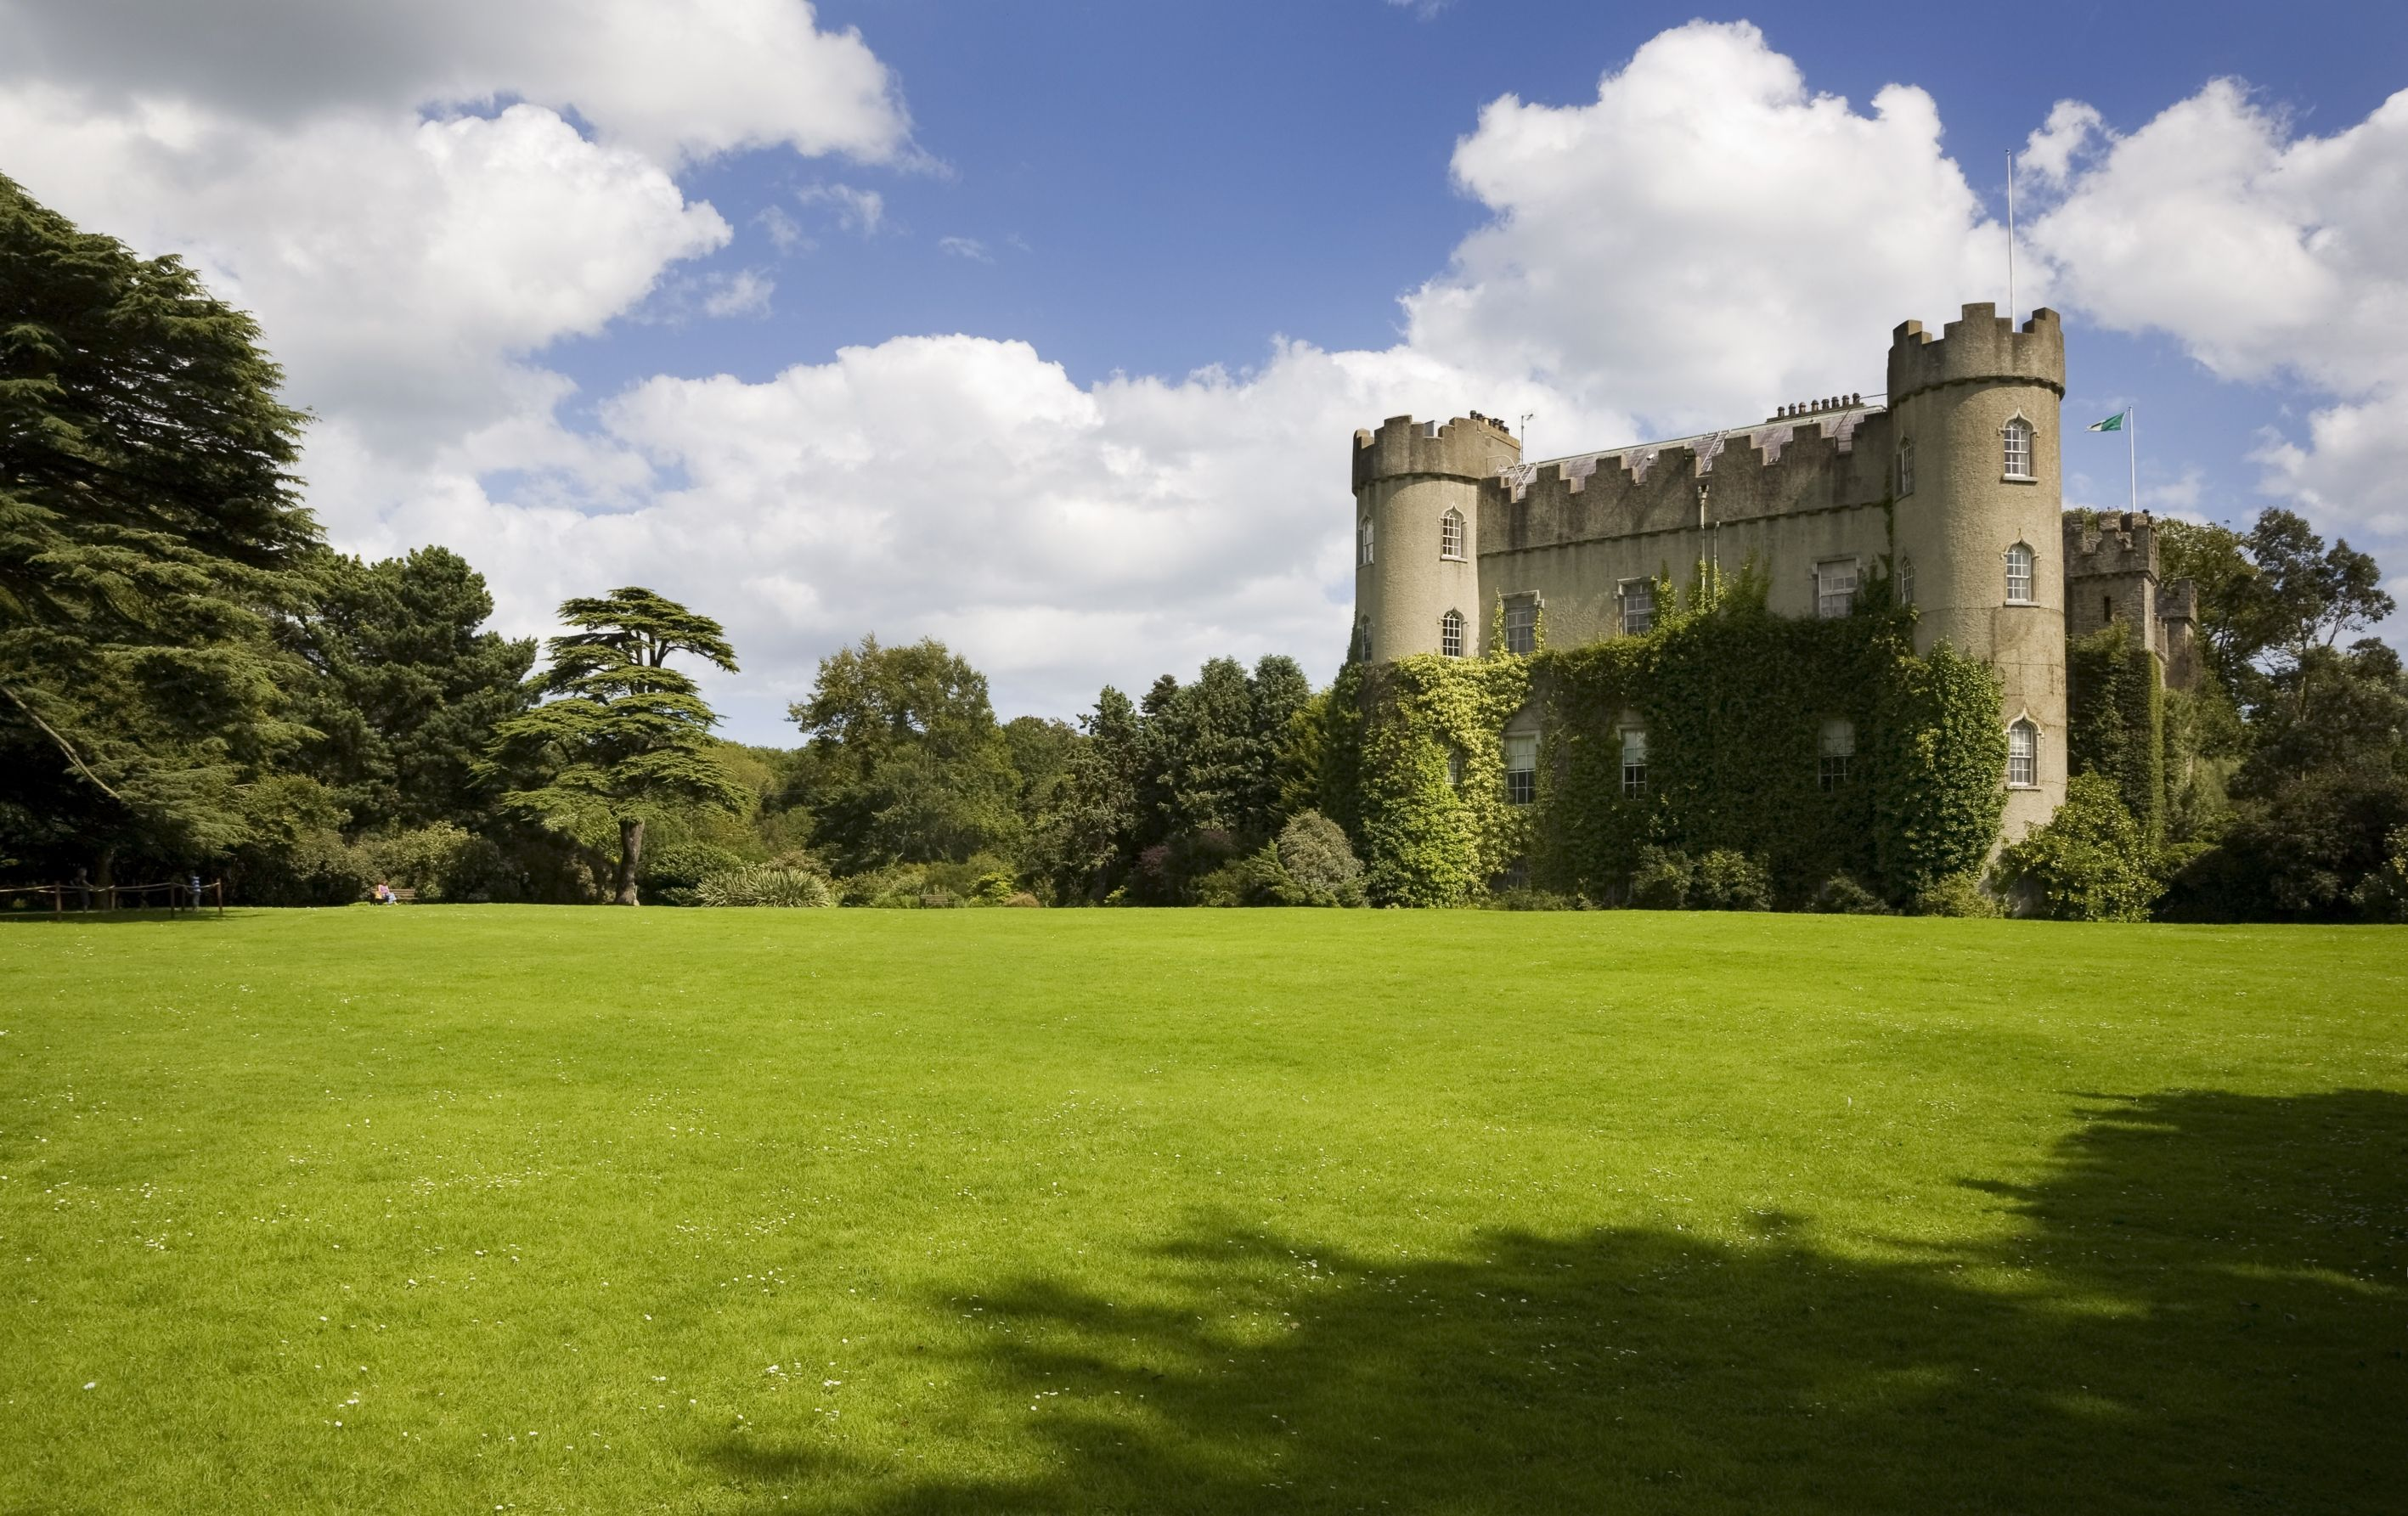 Malahide Castle, was both a fortress and a private home for nearly 800 years and has an interesting mix of architectural styles!